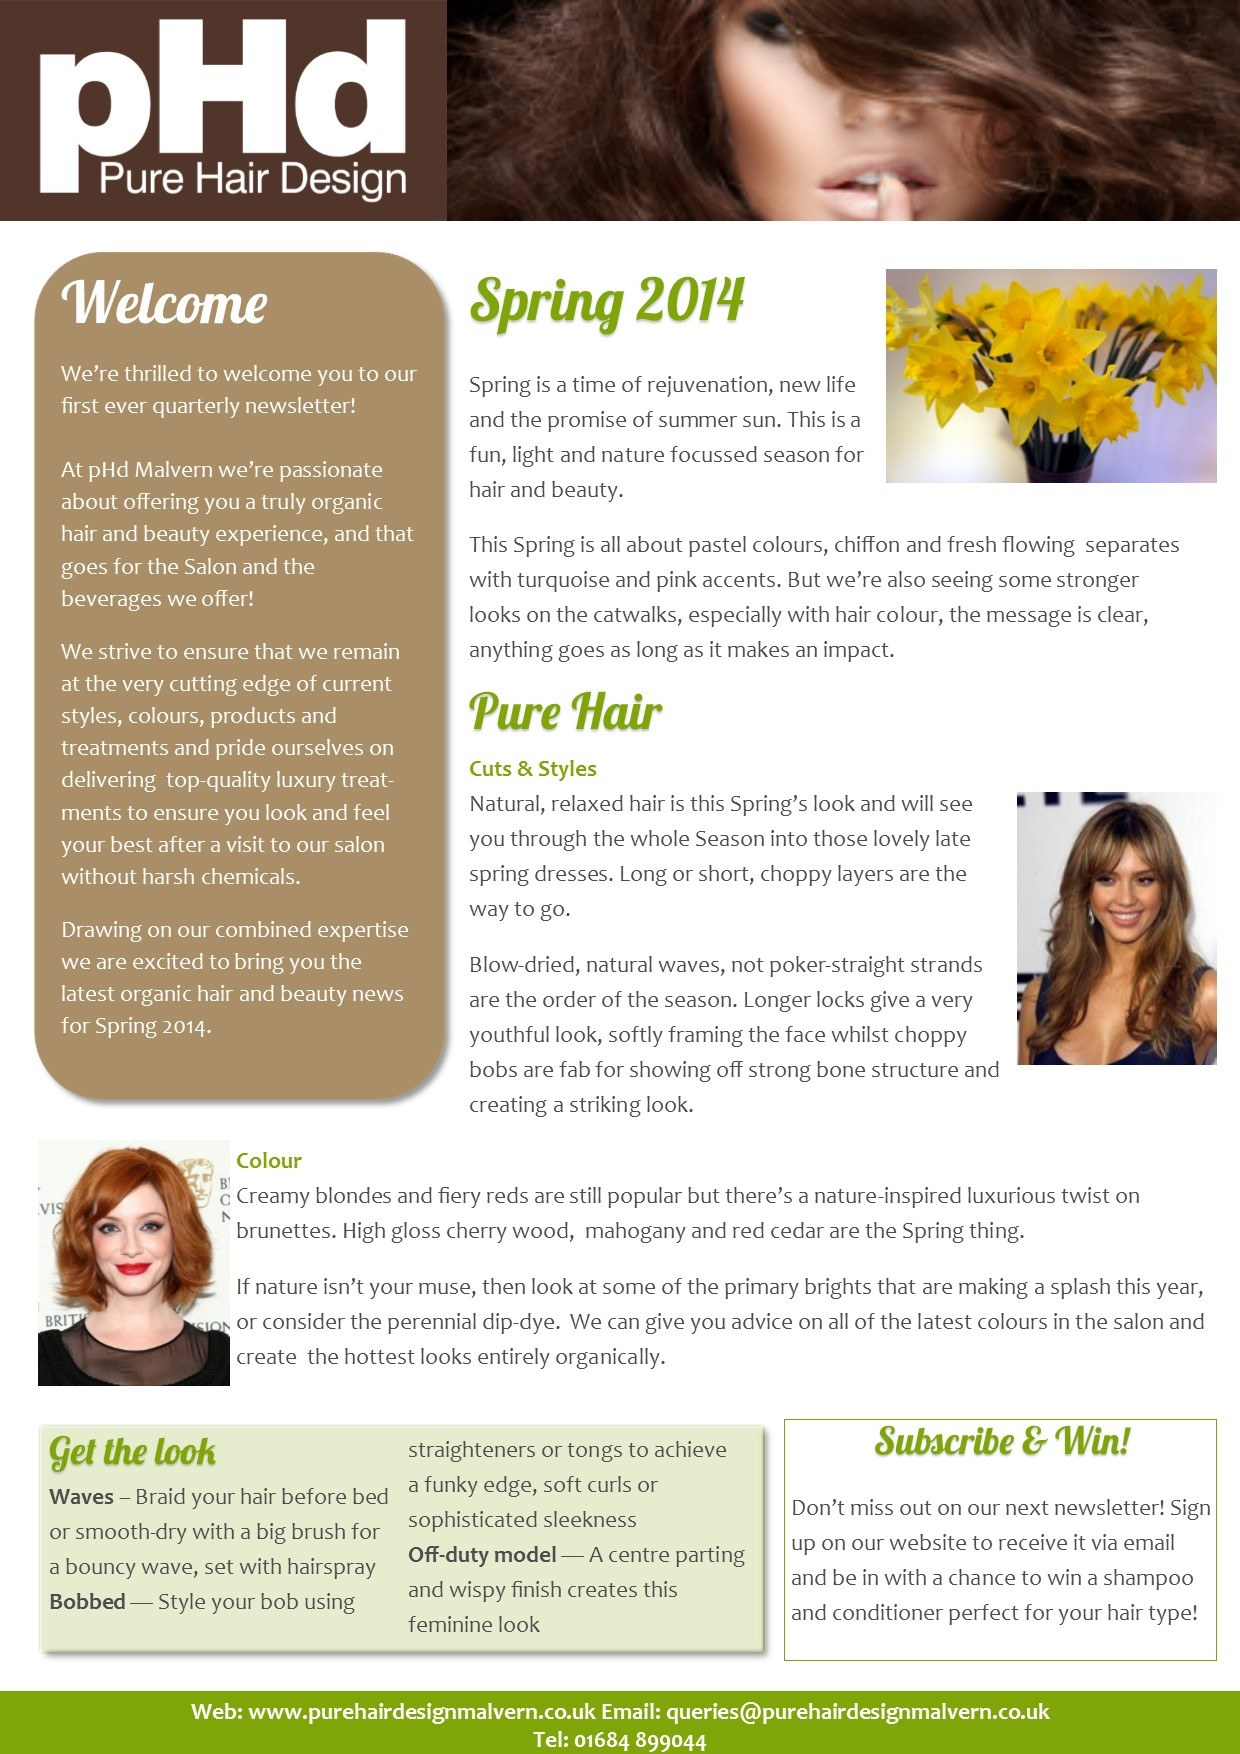 pHd Spring 2014 Newsletter Image Front